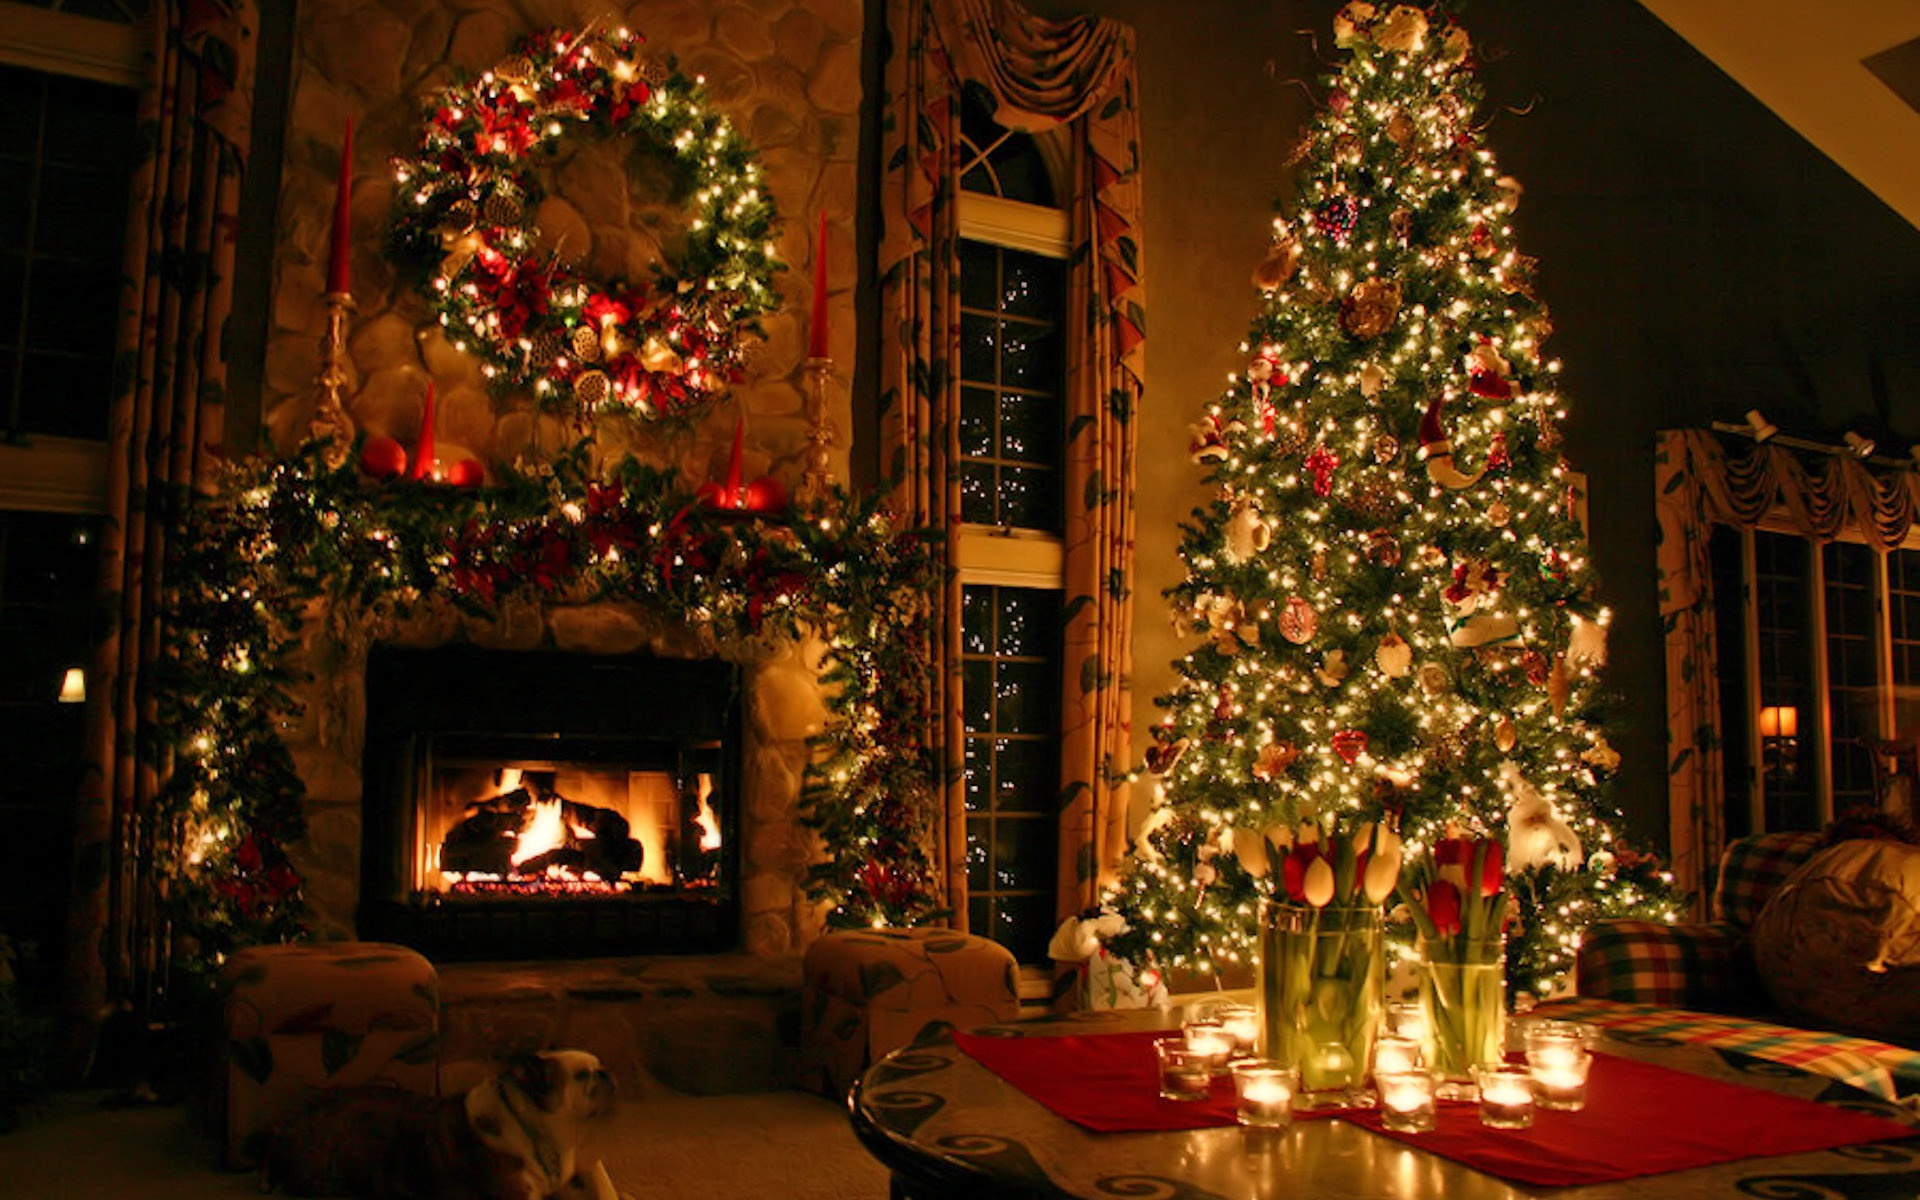 christmas wallpapers for desktop 2017   Grasscloth Wallpaper 1920x1200